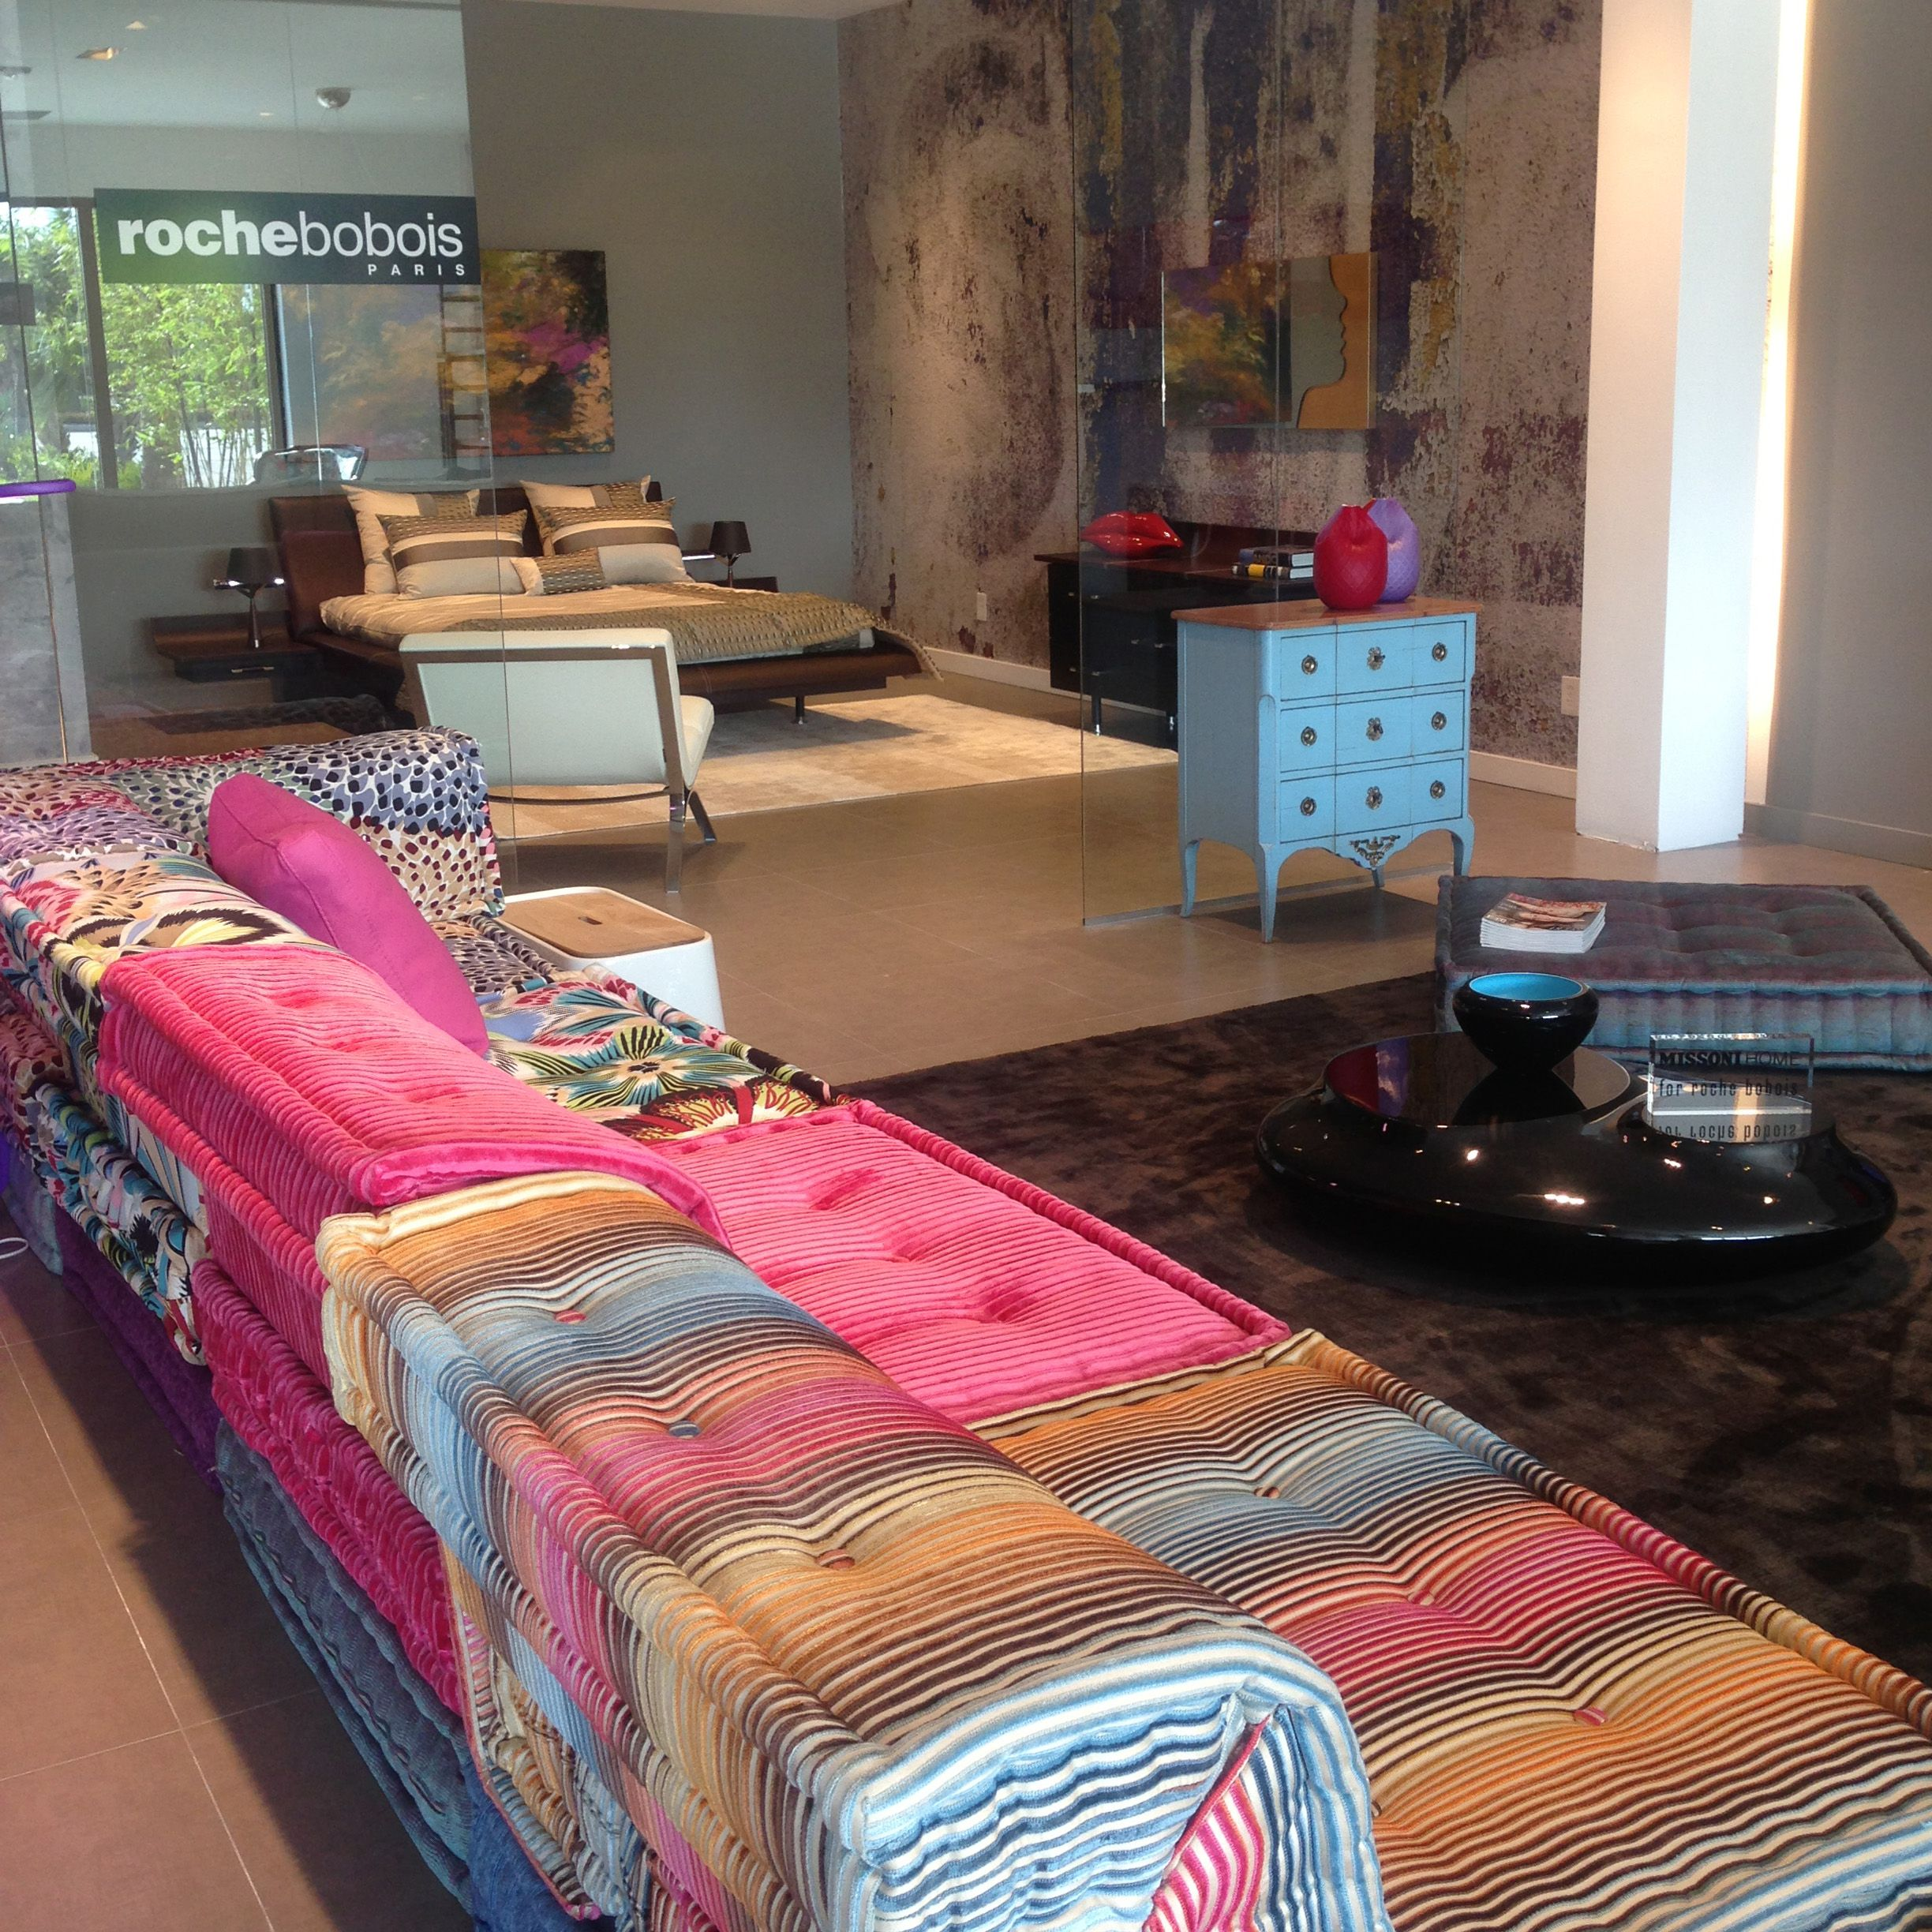 roche bobois grand opening celebration at the north palm beach showroom mah jong modular sofa. Black Bedroom Furniture Sets. Home Design Ideas